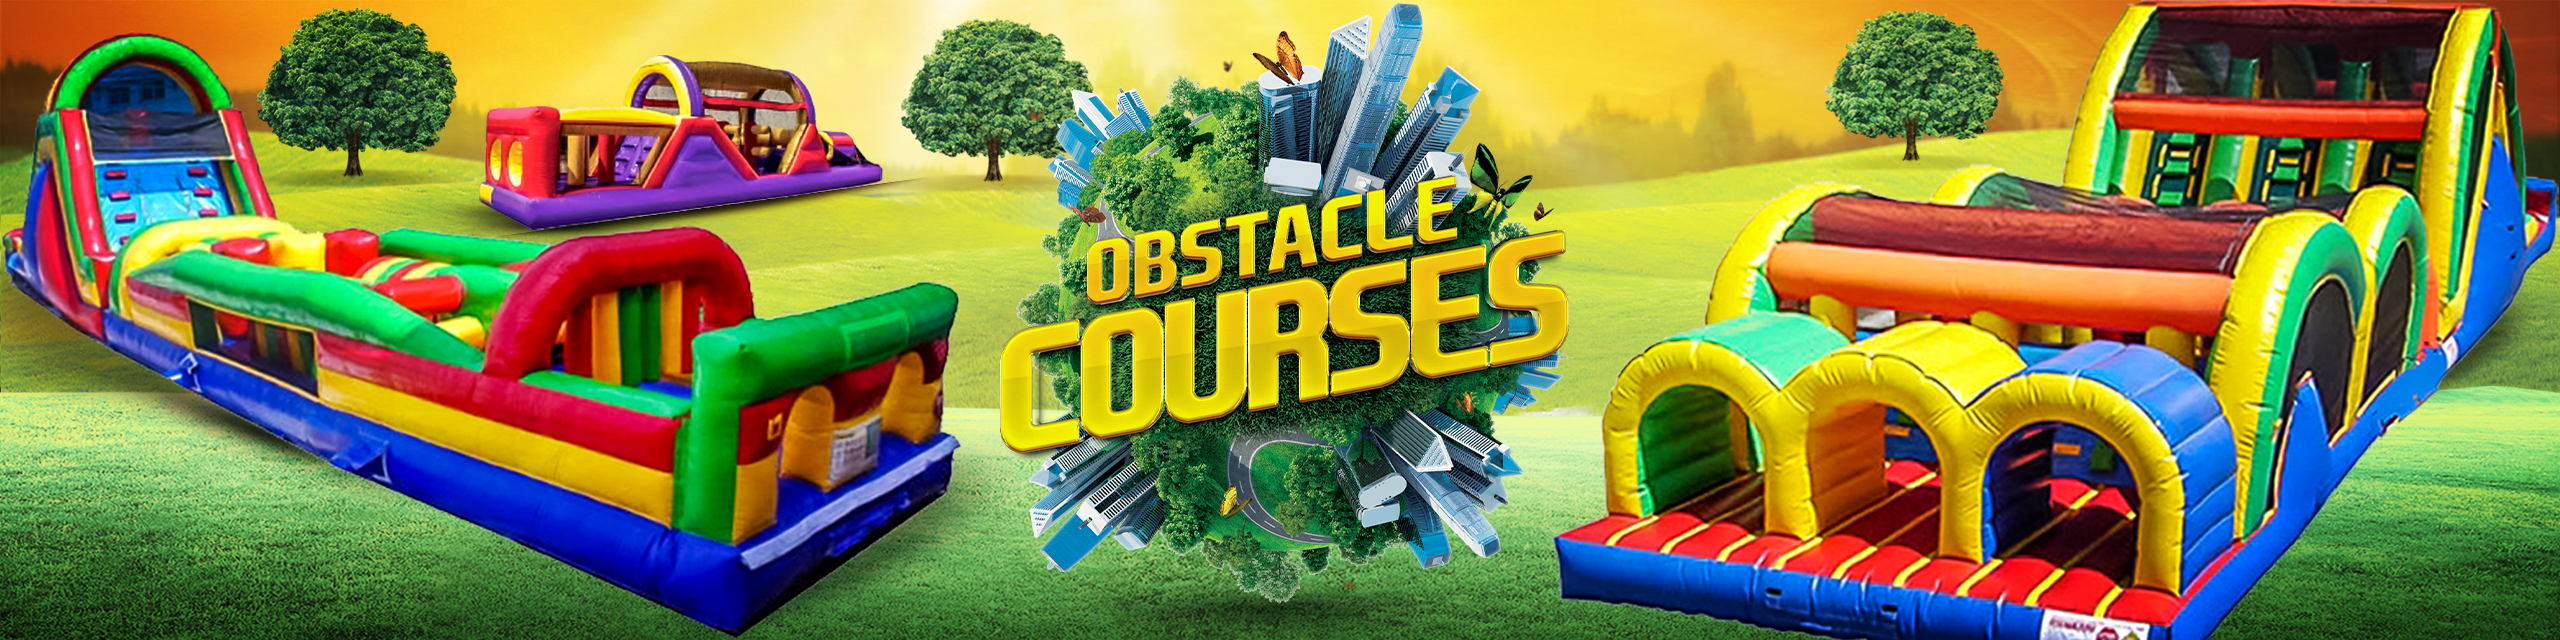 Obstacle Course rentals near Hattiesburg Mississippi